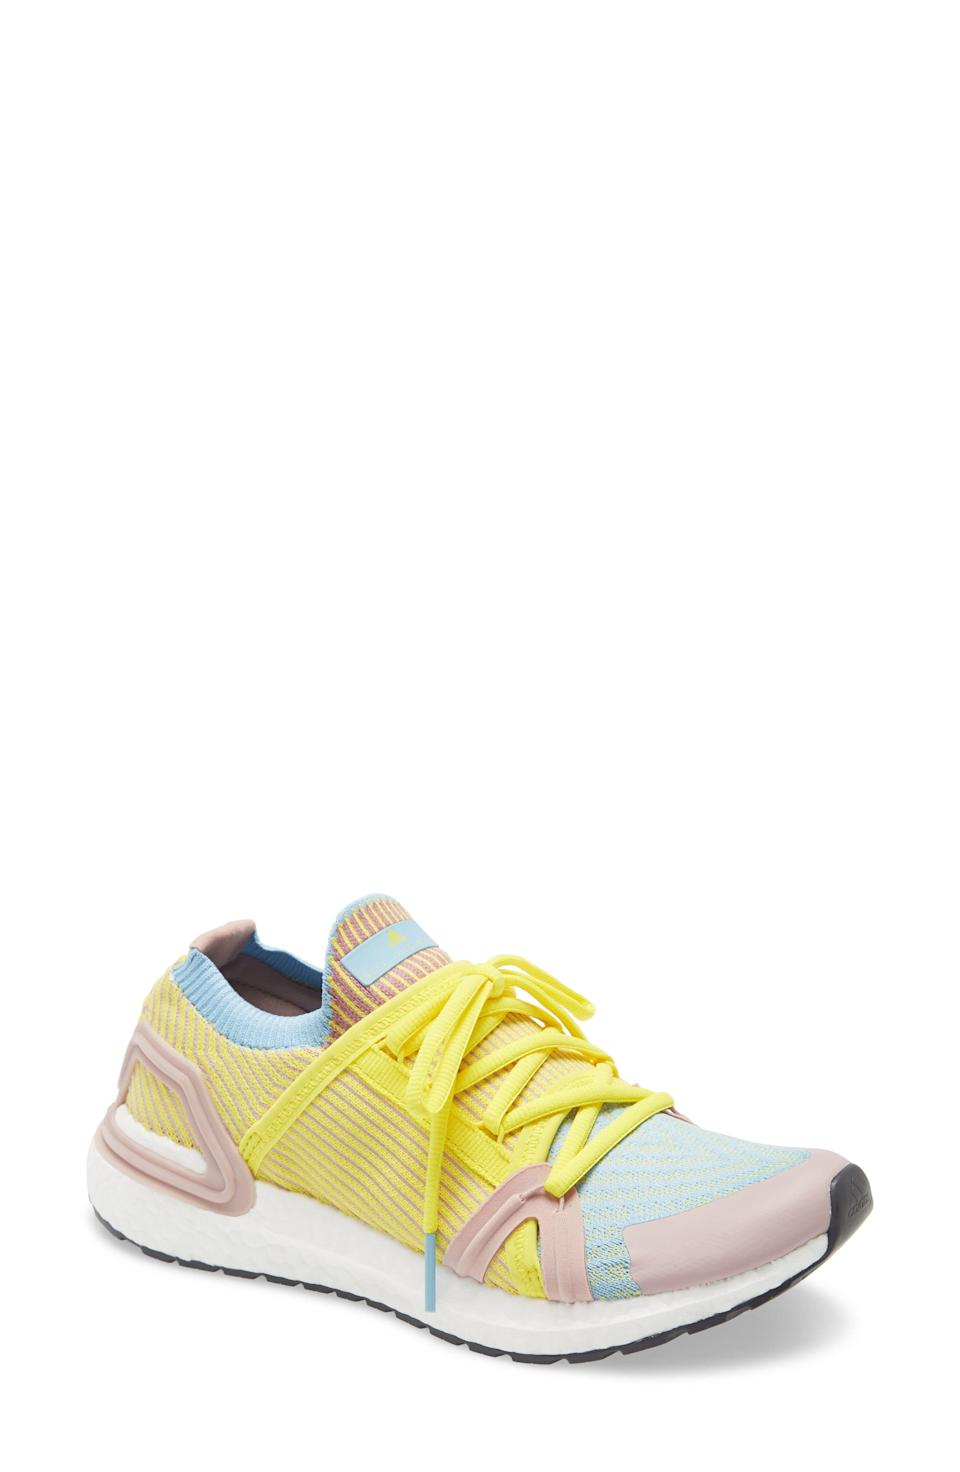 """<p><strong>Adidas by Stella McCartney</strong></p><p>nordstrom.com</p><p><strong>$184.00</strong></p><p><a href=""""https://go.redirectingat.com?id=74968X1596630&url=https%3A%2F%2Fshop.nordstrom.com%2Fs%2Fadidas-by-stella-mccartney-ultraboost-20-s-running-shoe-women%2F5417513&sref=https%3A%2F%2Fwww.harpersbazaar.com%2Ffashion%2Ftrends%2Fg33234271%2Fcute-running-shoes-for-women%2F"""" rel=""""nofollow noopener"""" target=""""_blank"""" data-ylk=""""slk:Shop Now"""" class=""""link rapid-noclick-resp"""">Shop Now</a></p><p>Designer shoes are often just for leisure activities, but the Adidas by Stella McCartney sneakers are as primed for the running trail as they are for the runway.</p>"""